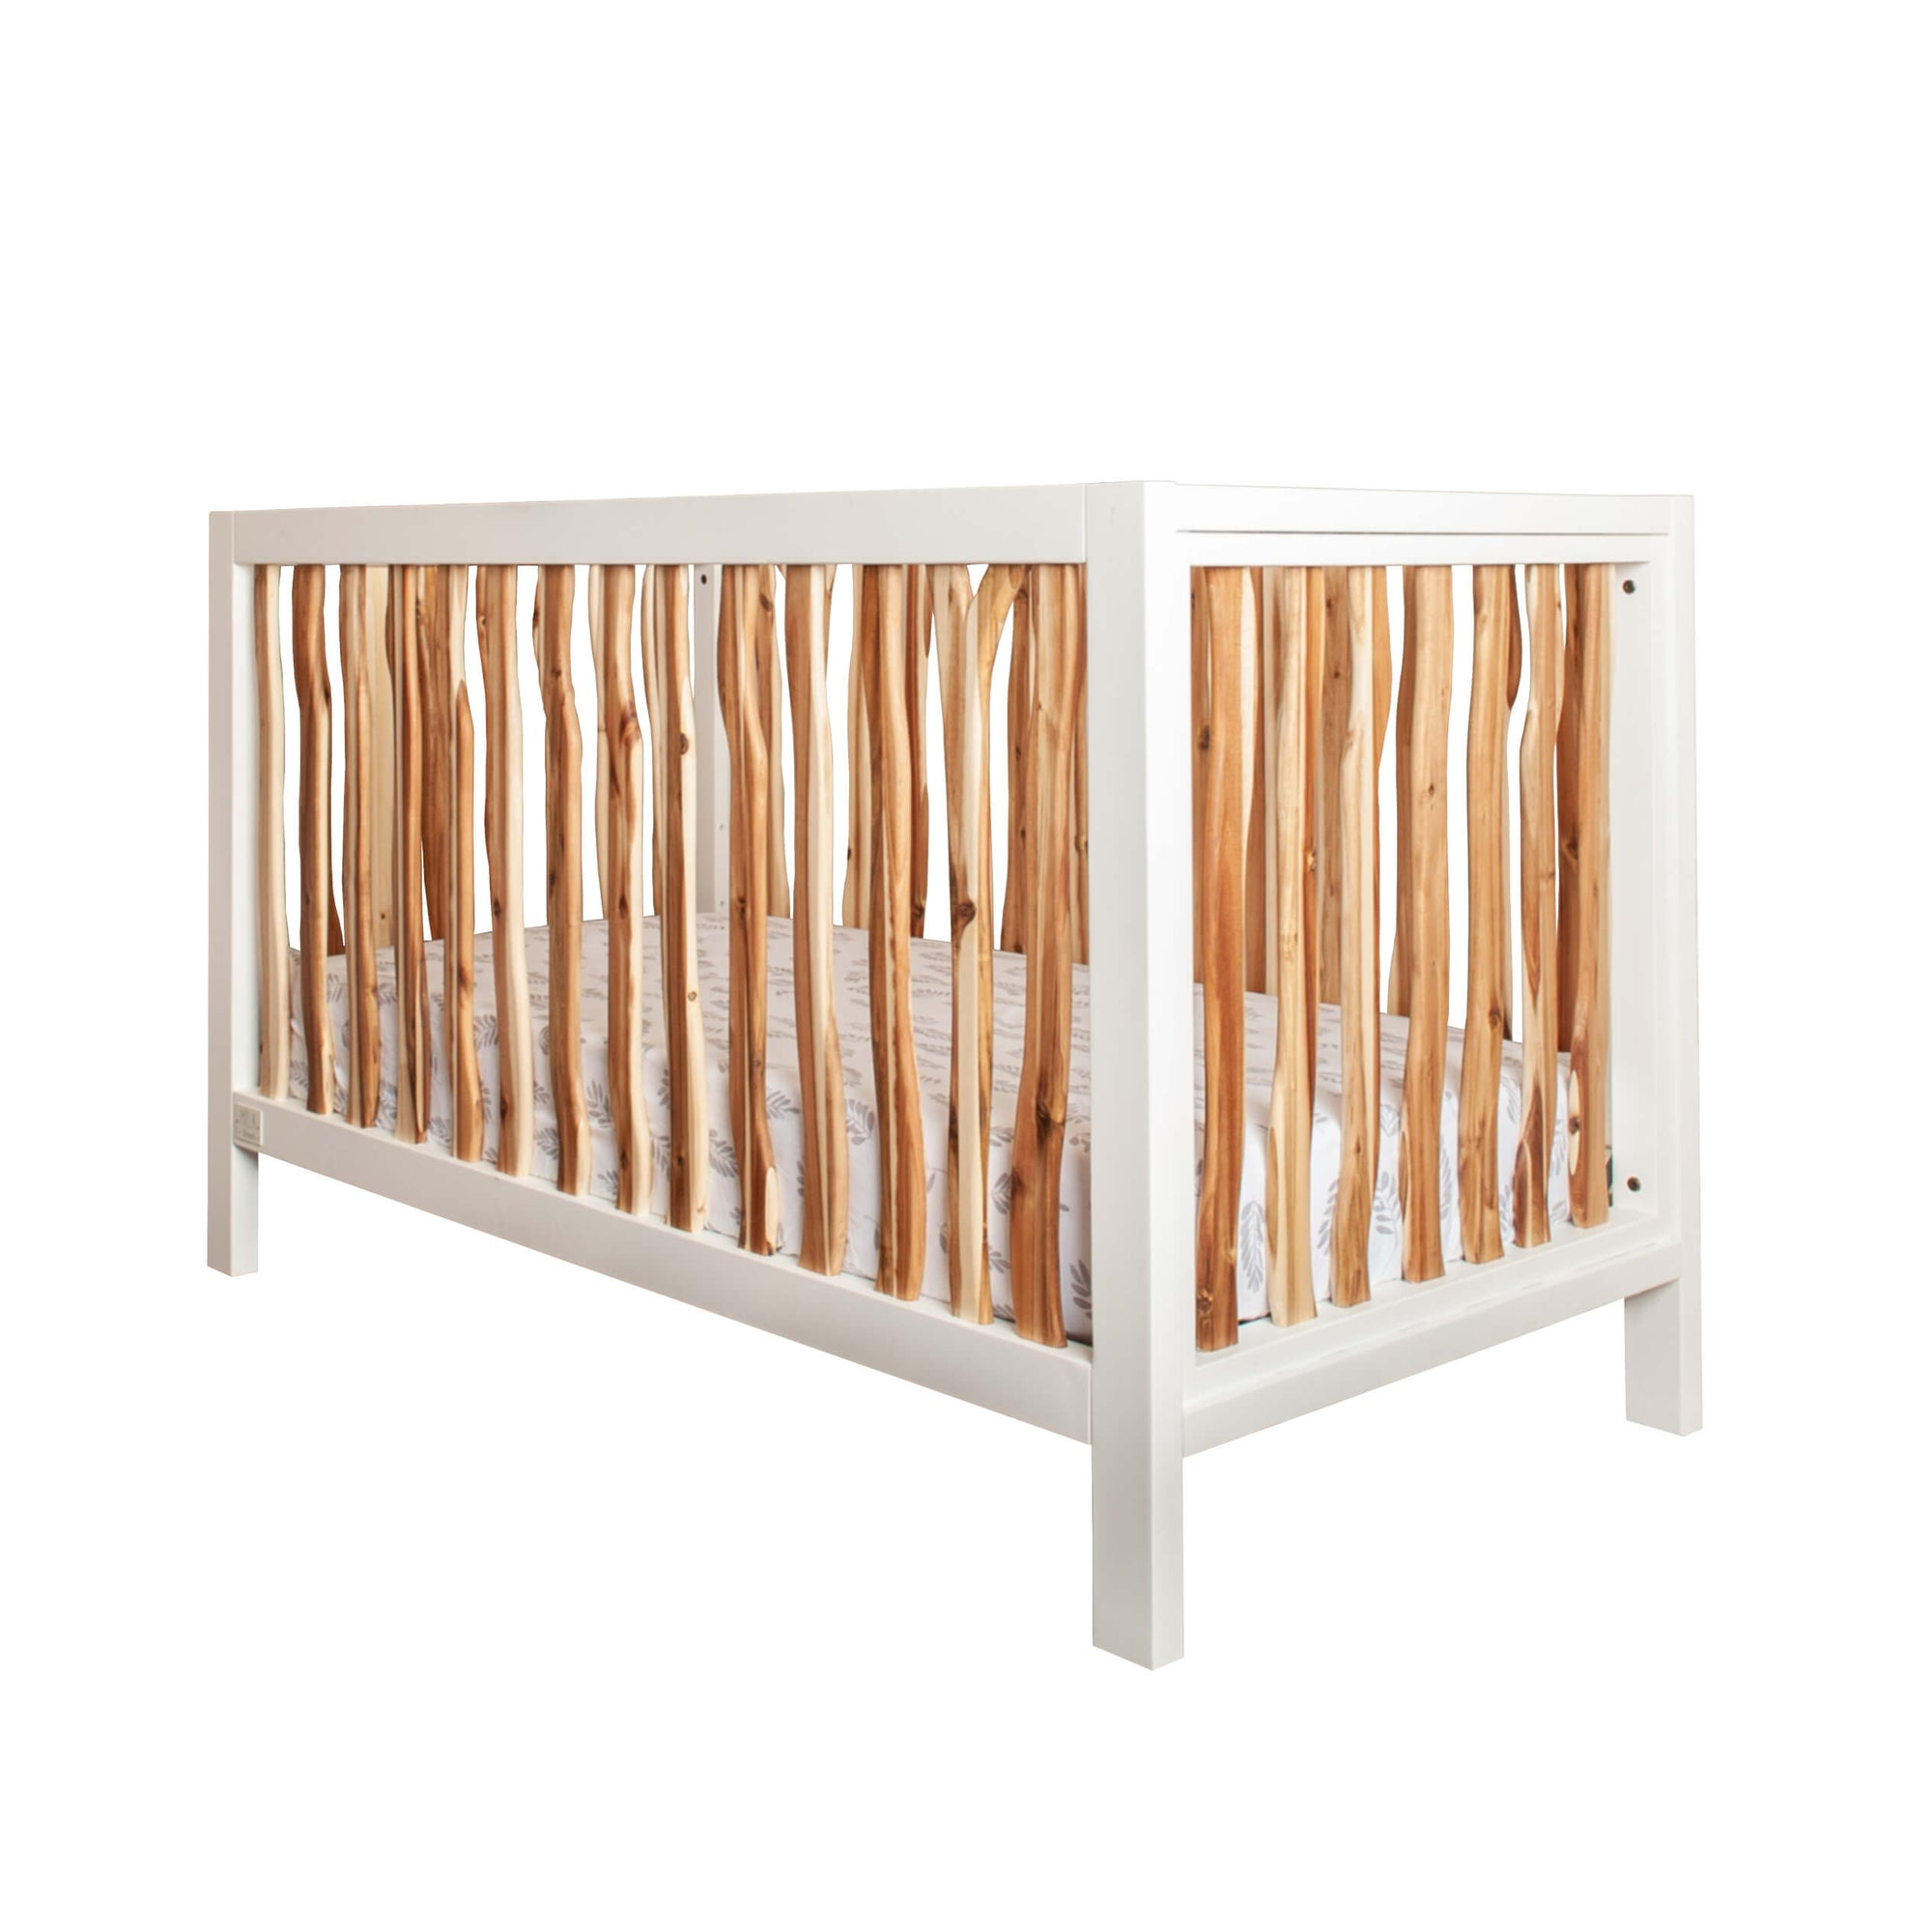 Milk Street Baby Branch Acacia & Snow Convertible Crib